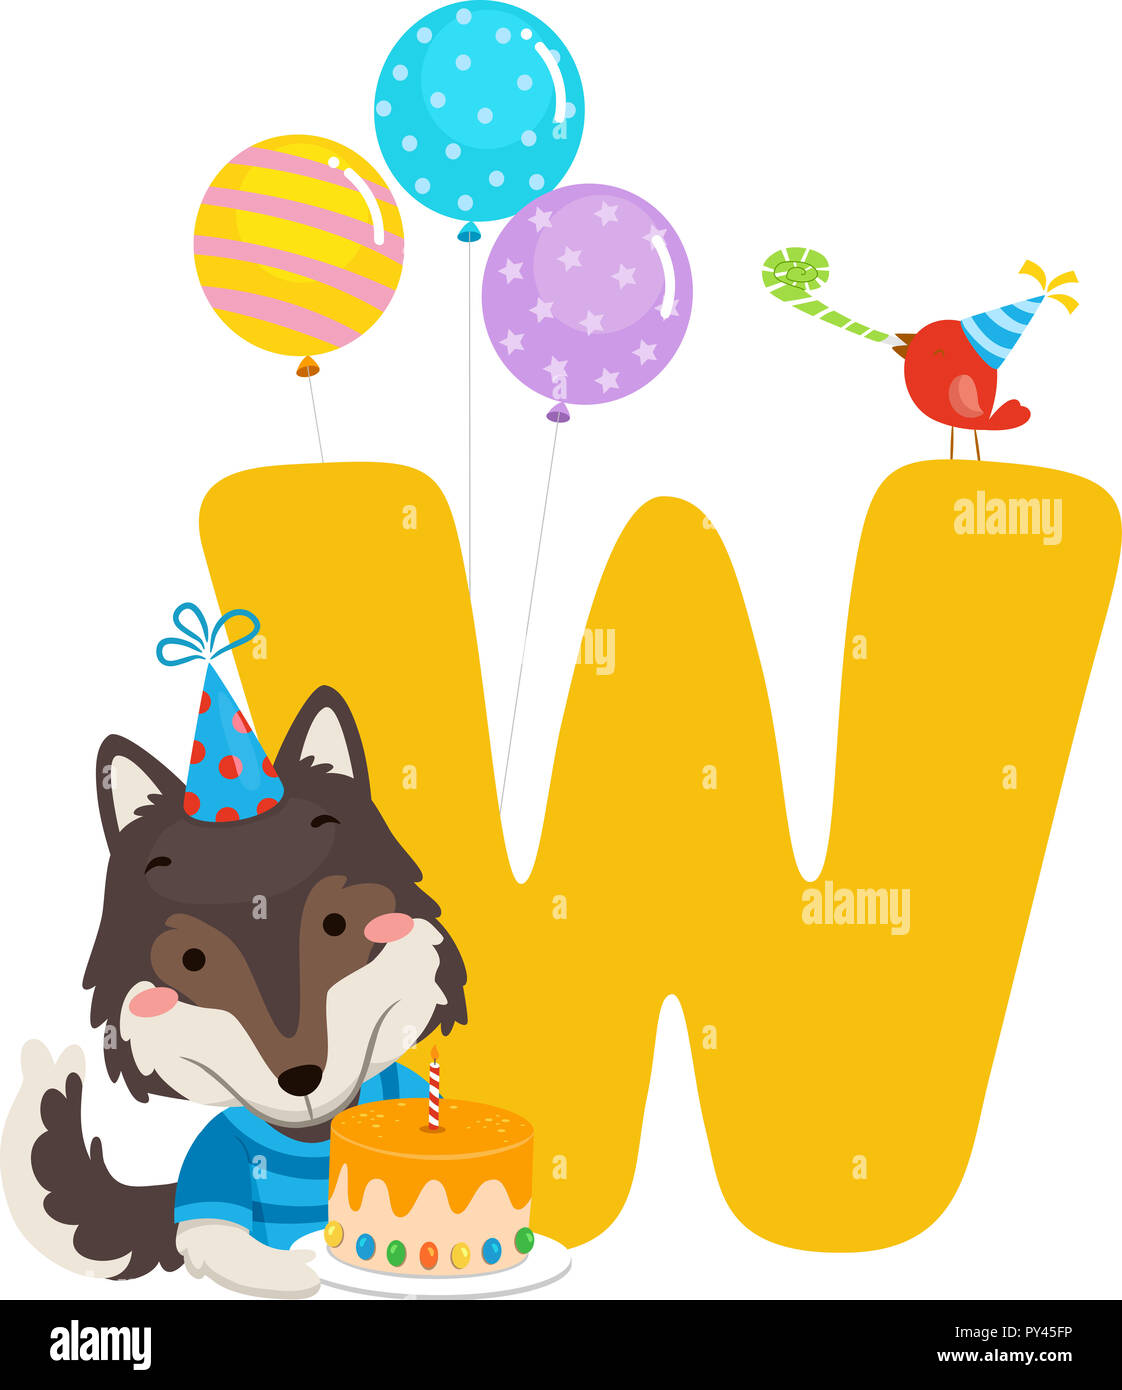 Illustration Of A Wolf Holding Birthday Cake With Balloons And Letter W